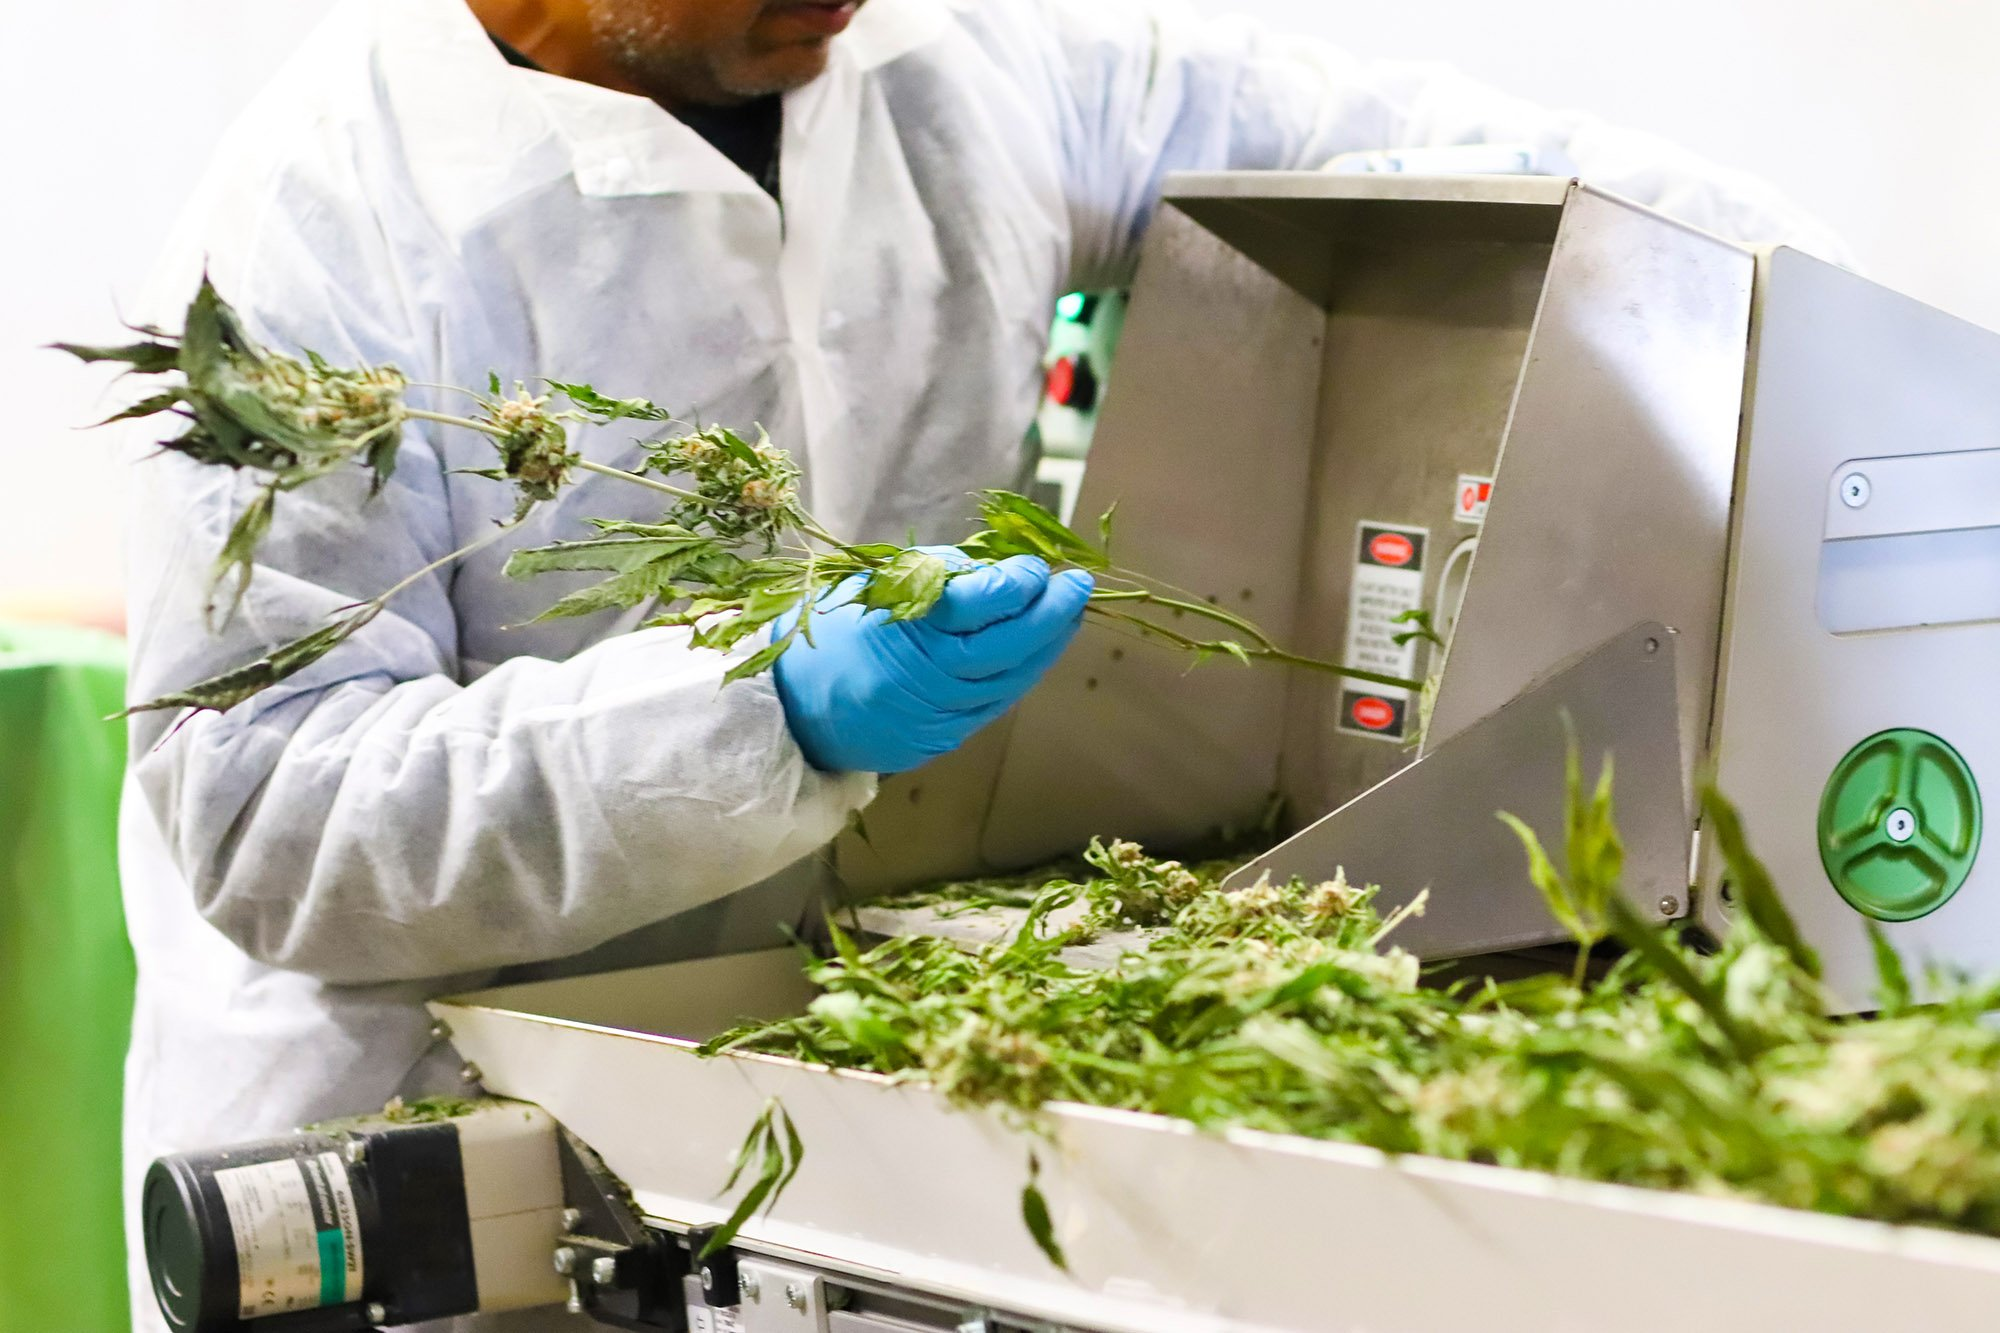 Greenbrier Holdings worker processing cannabis